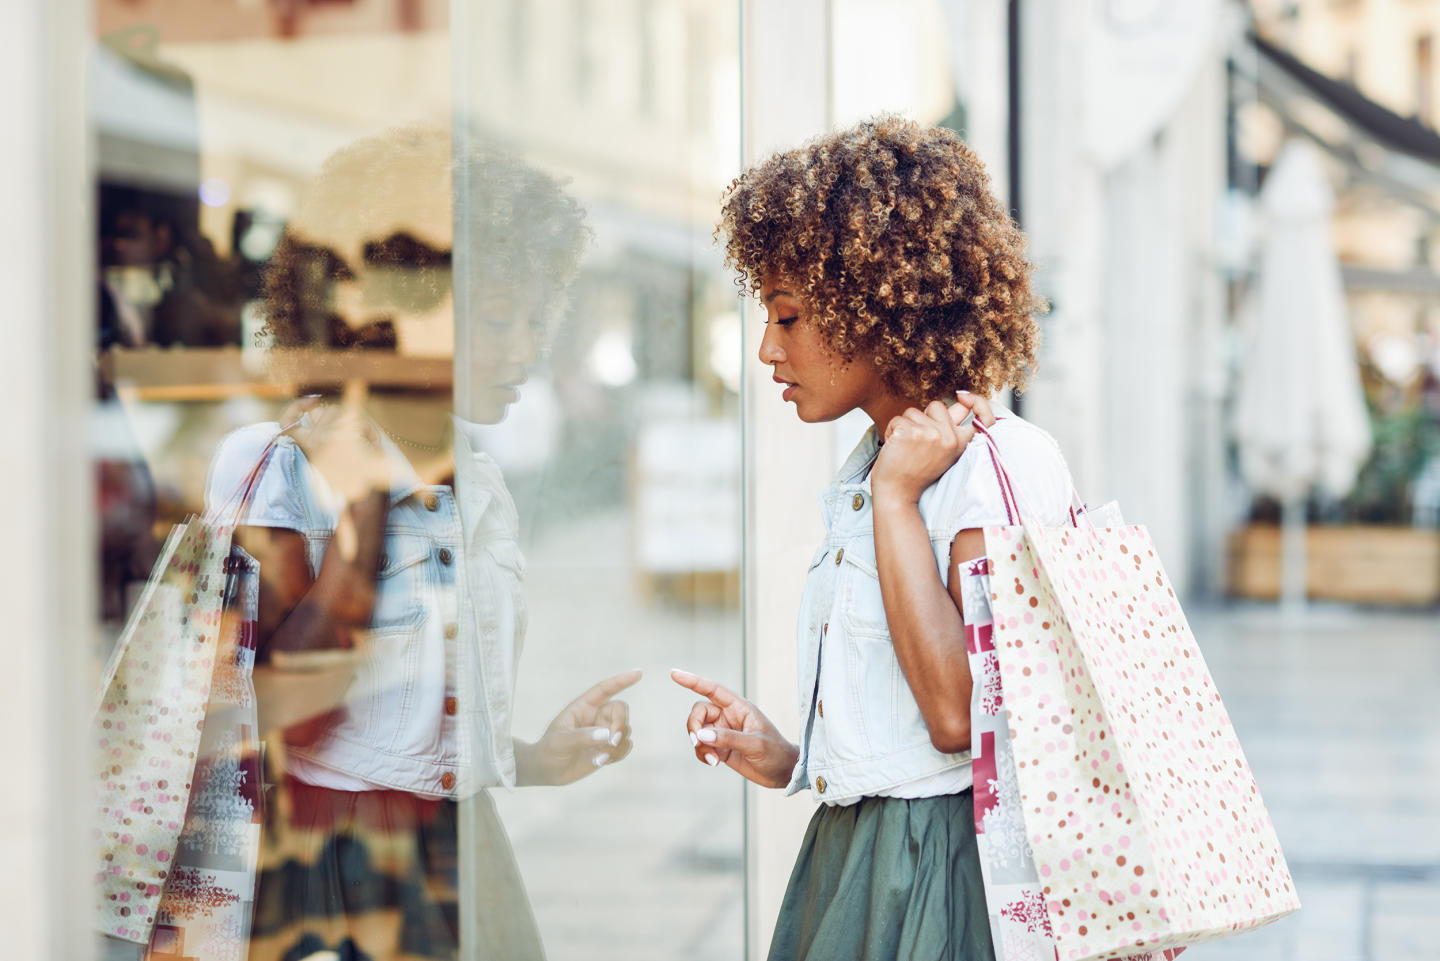 An image of a woman window shopping